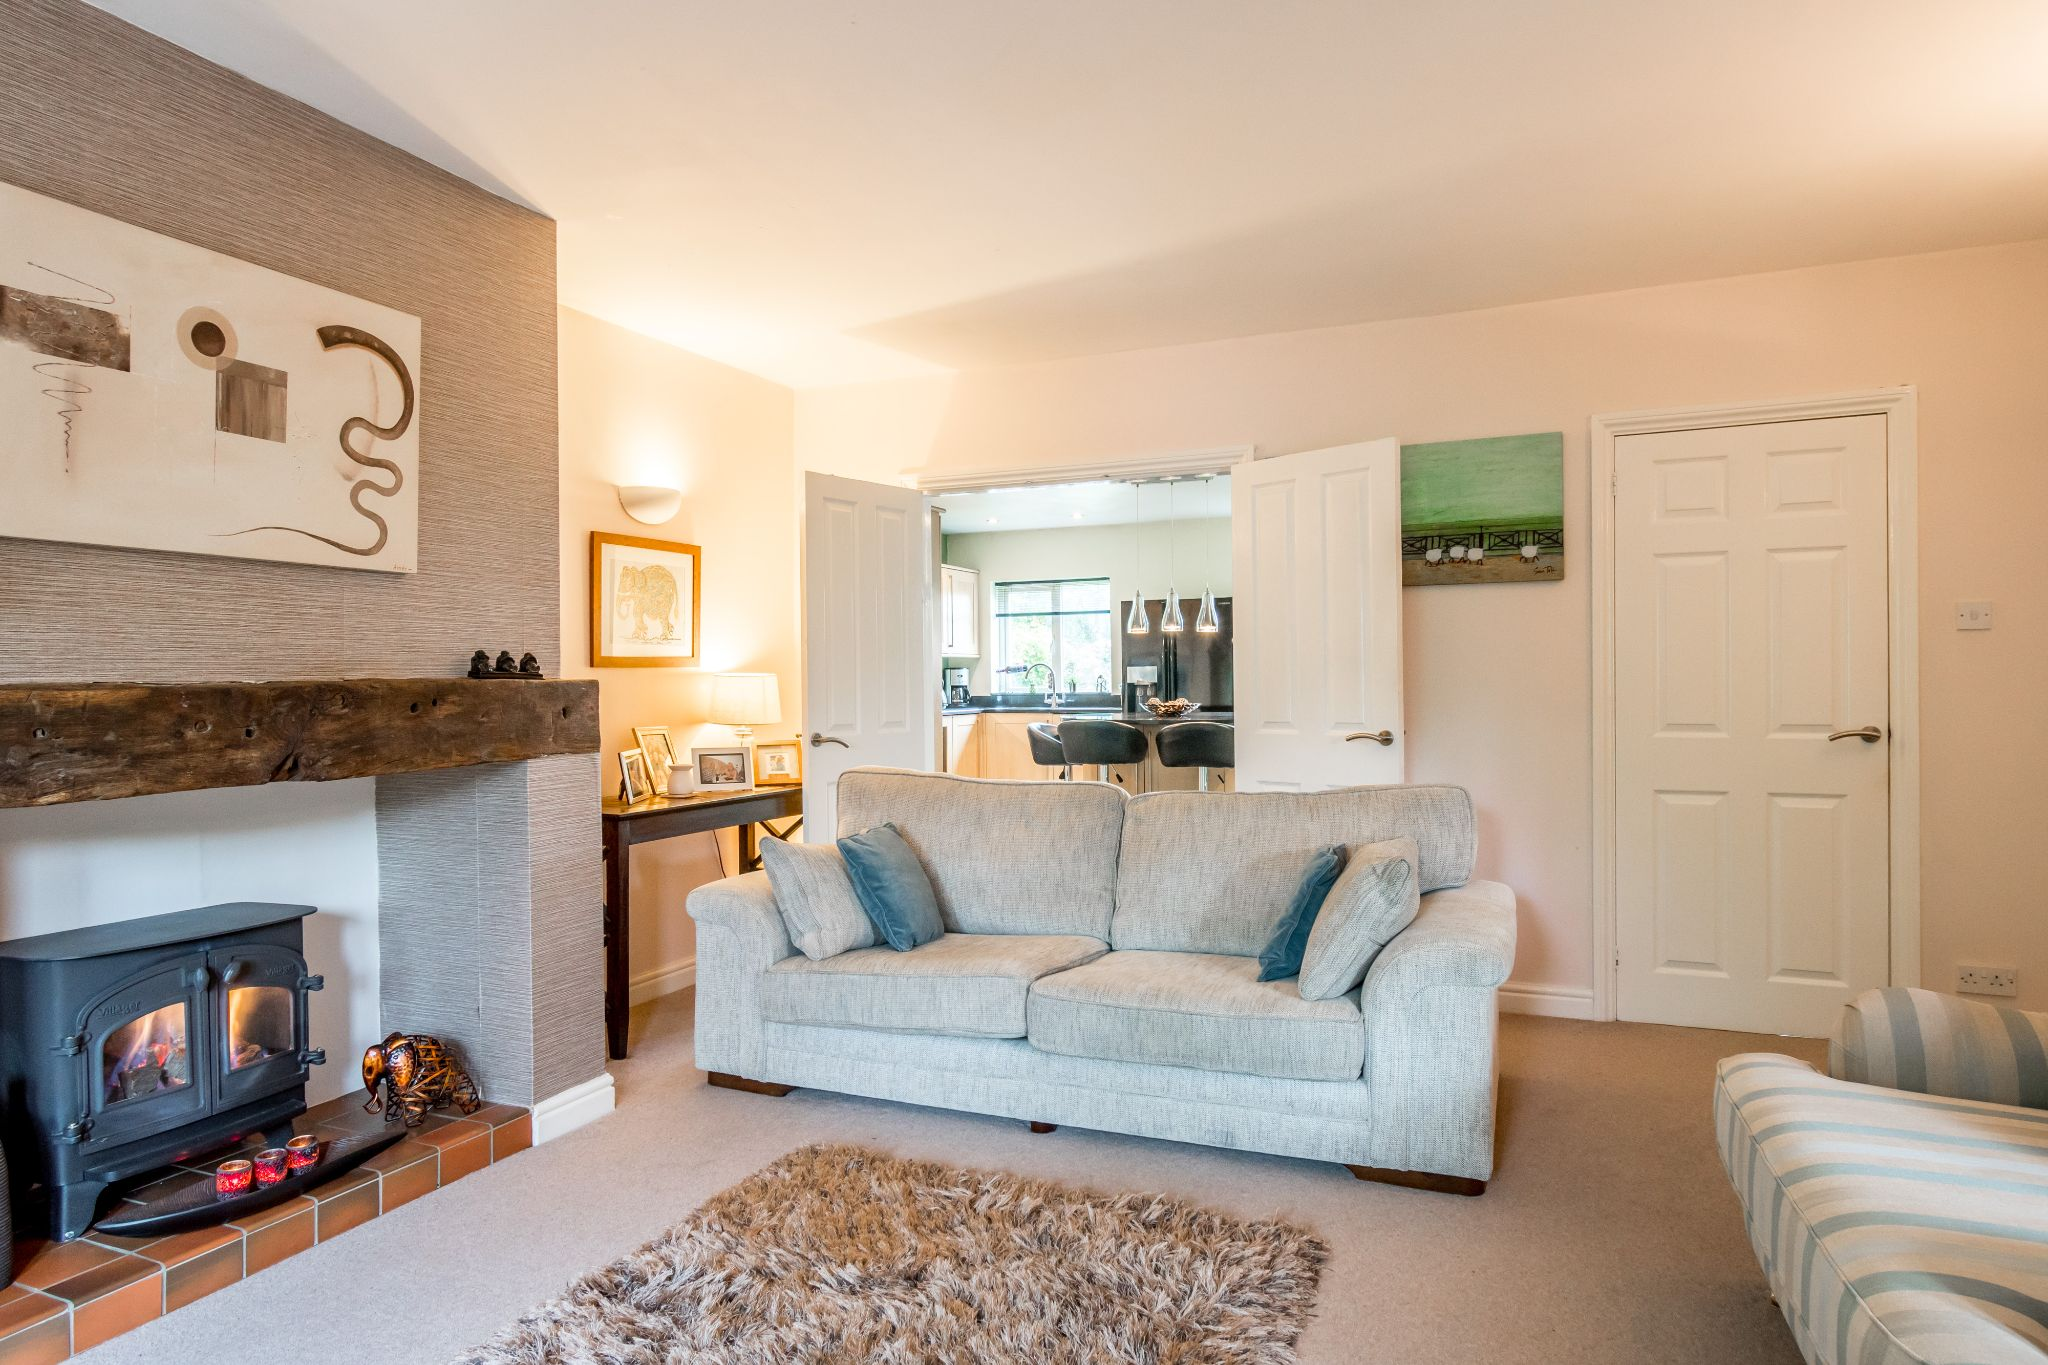 5 bedroom detached house SSTC in Brighouse - Lounge